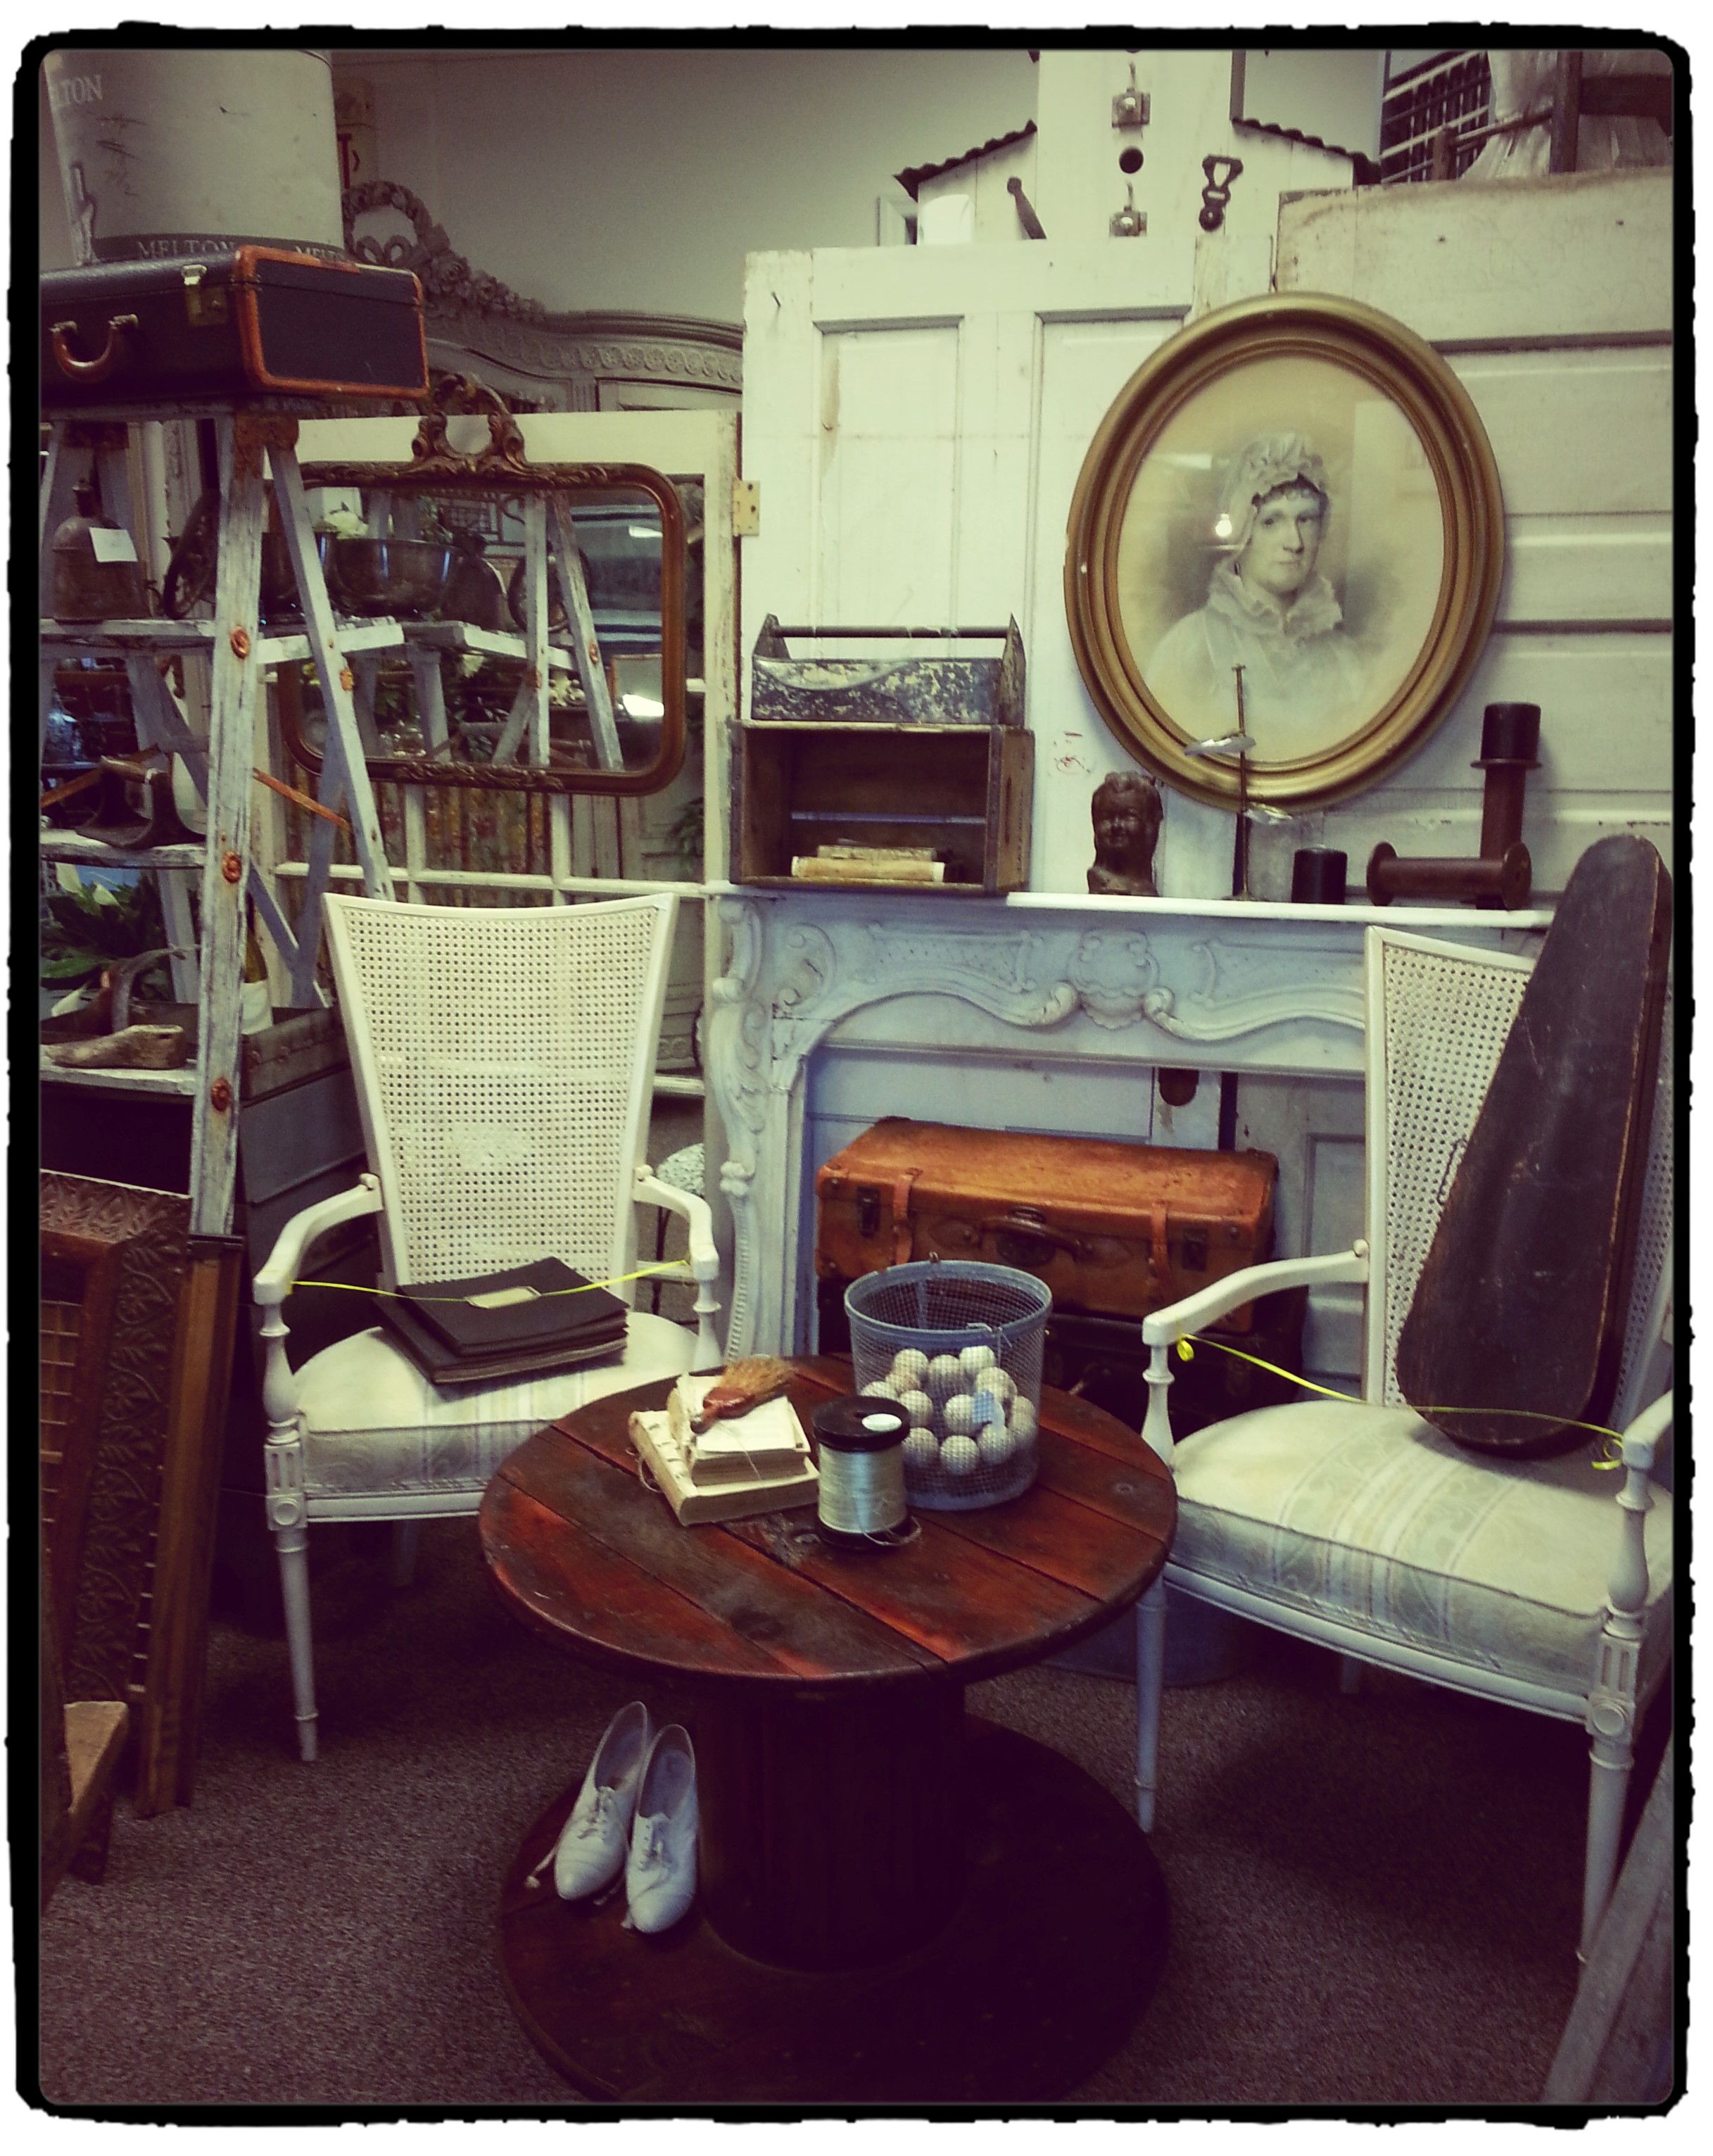 A peek at some of the new items added to the antique shop